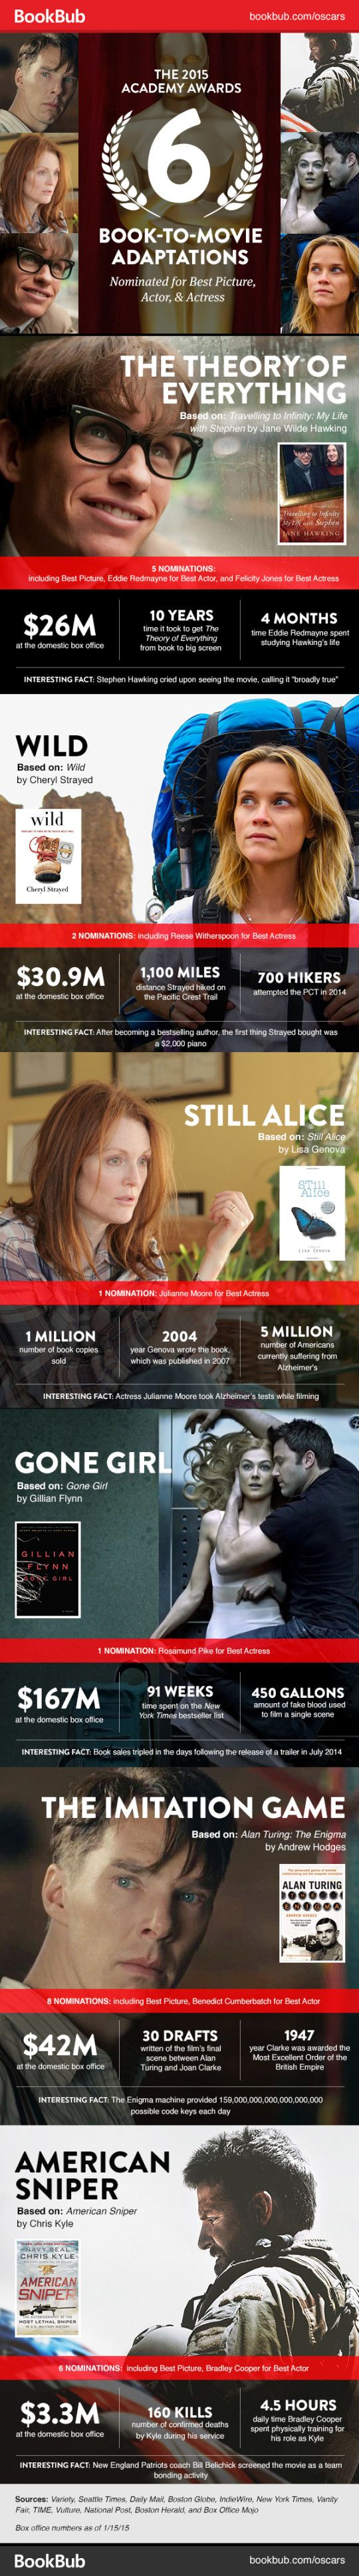 Book-related Oscars 2015 nominees - infographic